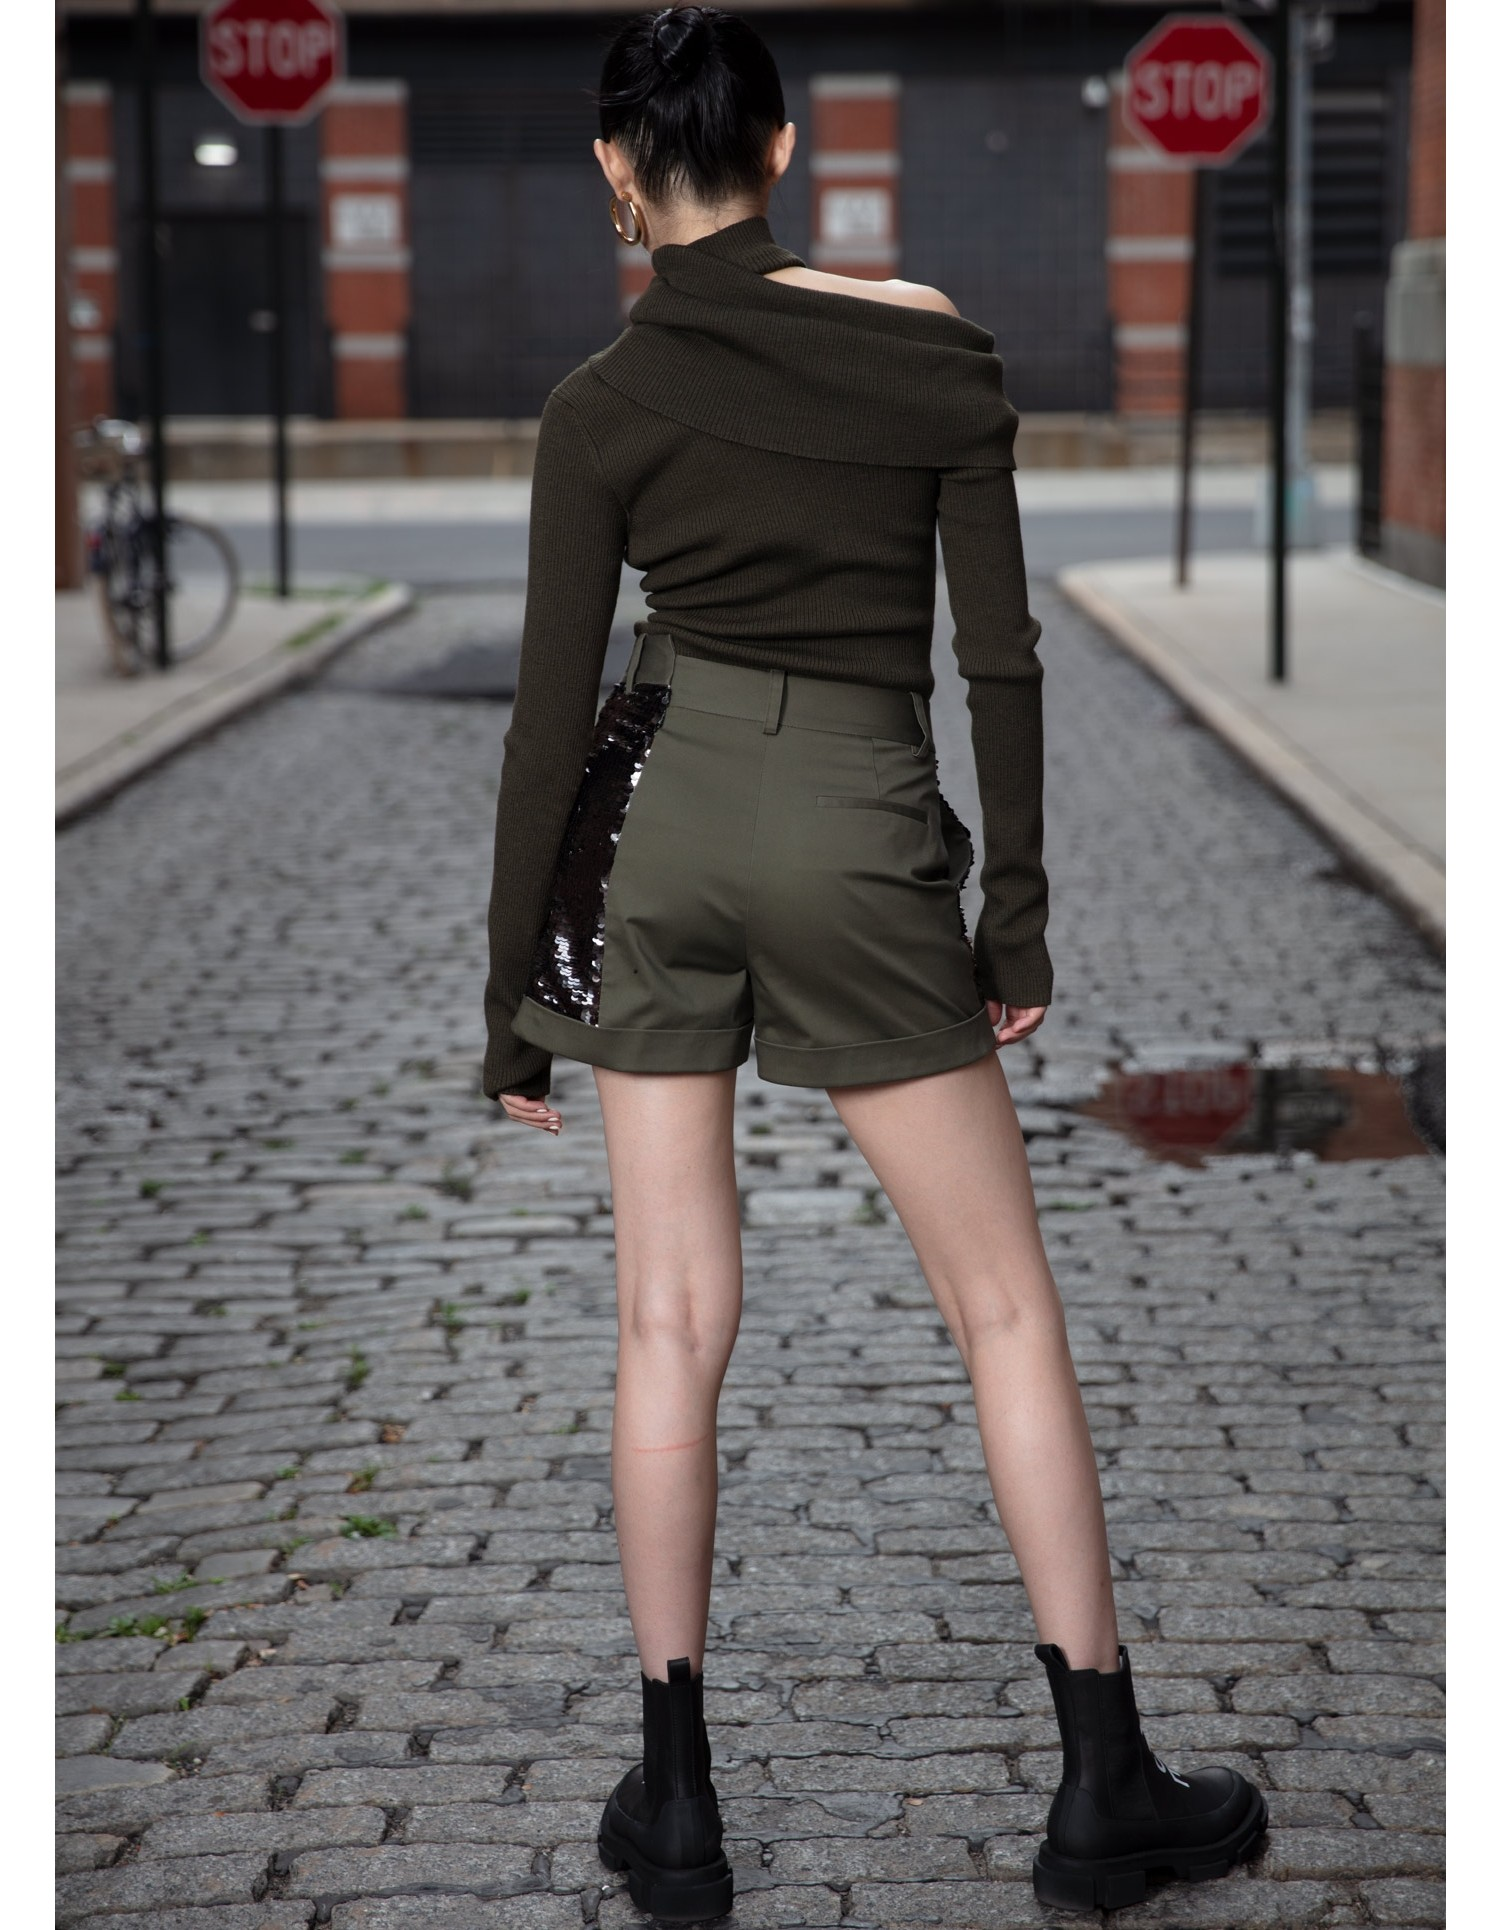 MONSE Foldover Draped Knit in Olive on Model Back View